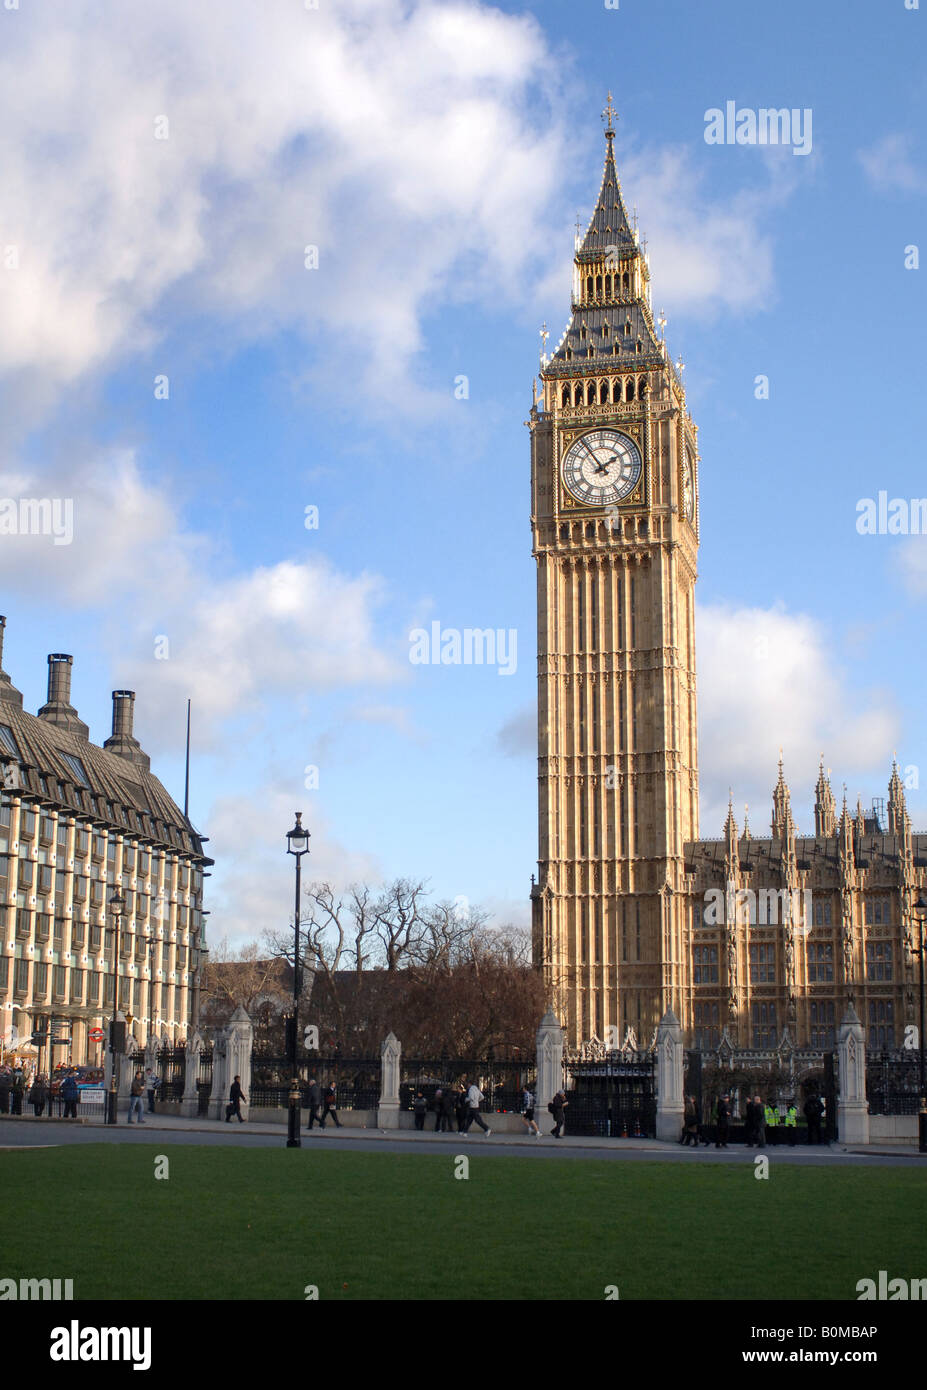 Westminster Big Ben - Stock Image